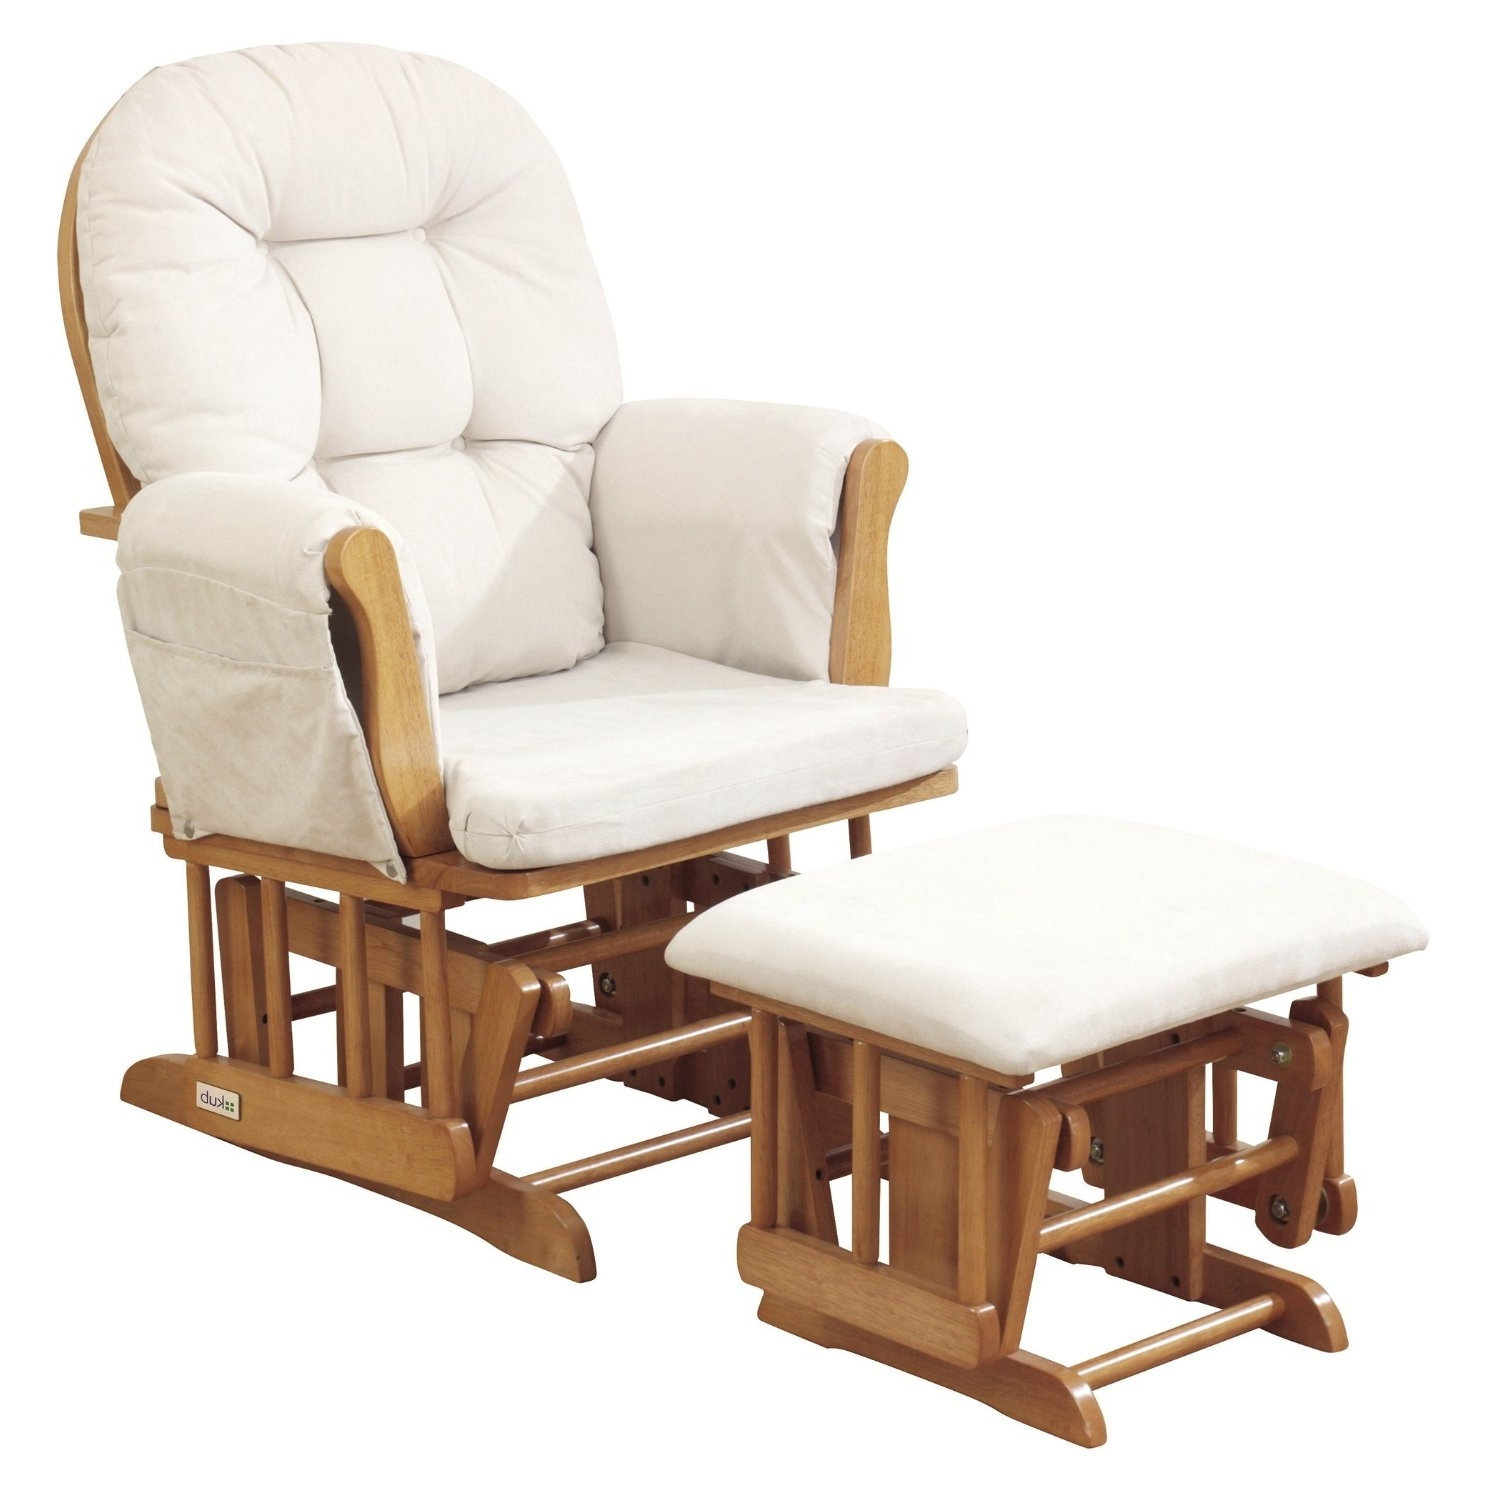 Newest Rocking Chairs With Footstool For Furniture: Glider Rocking Chair On Sale (View 11 of 15)